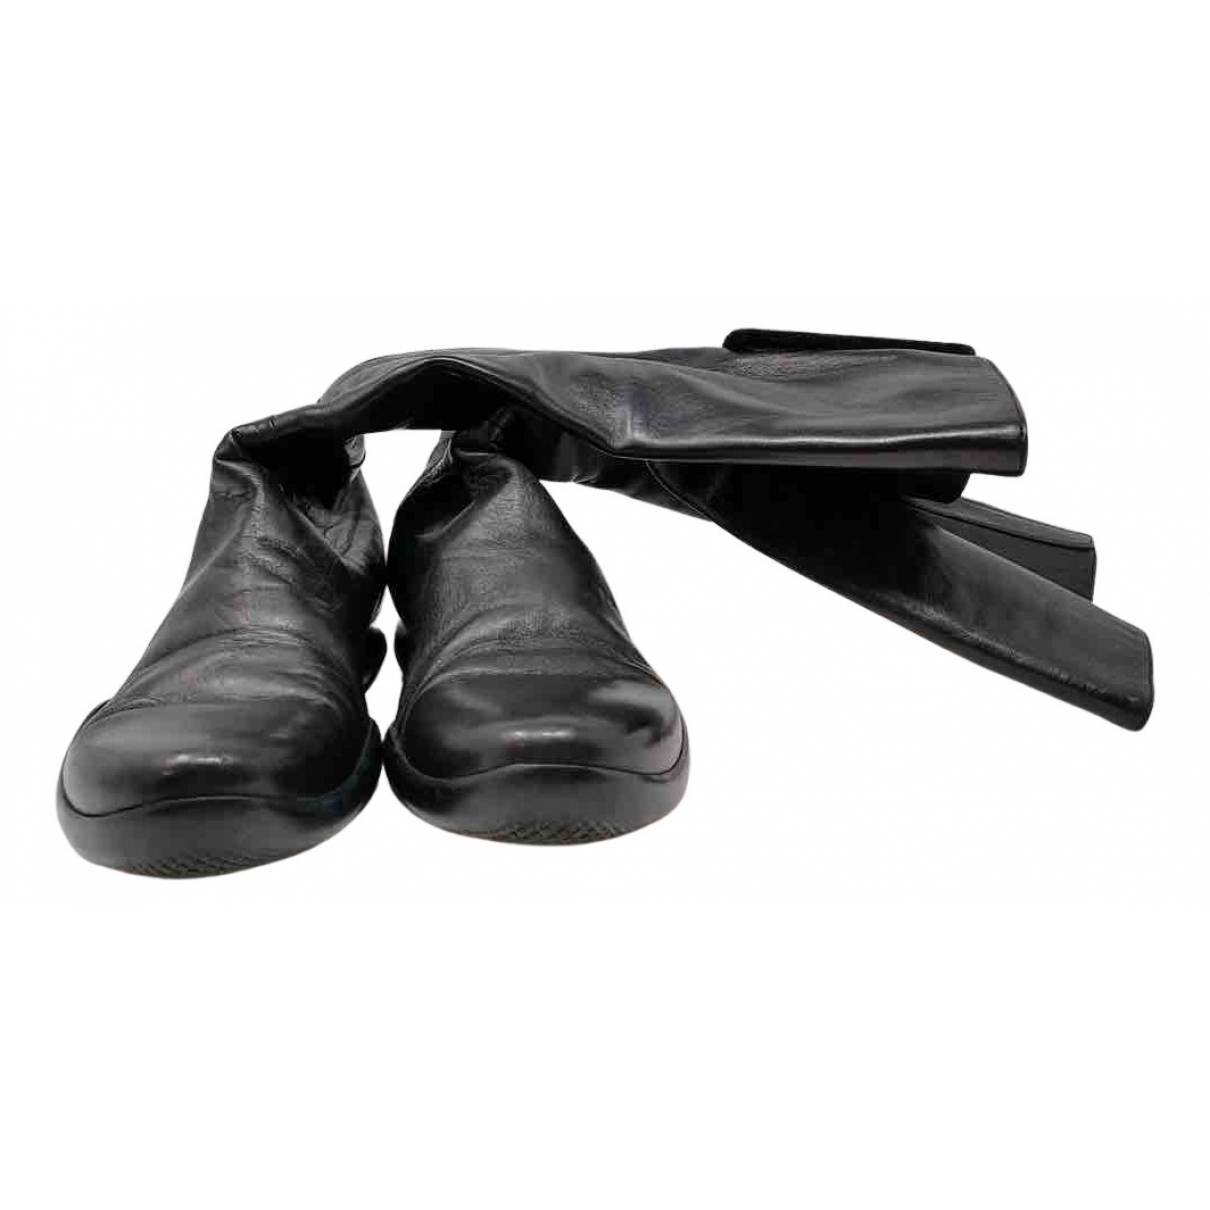 Prada N Black Leather Boots for Women 41 IT